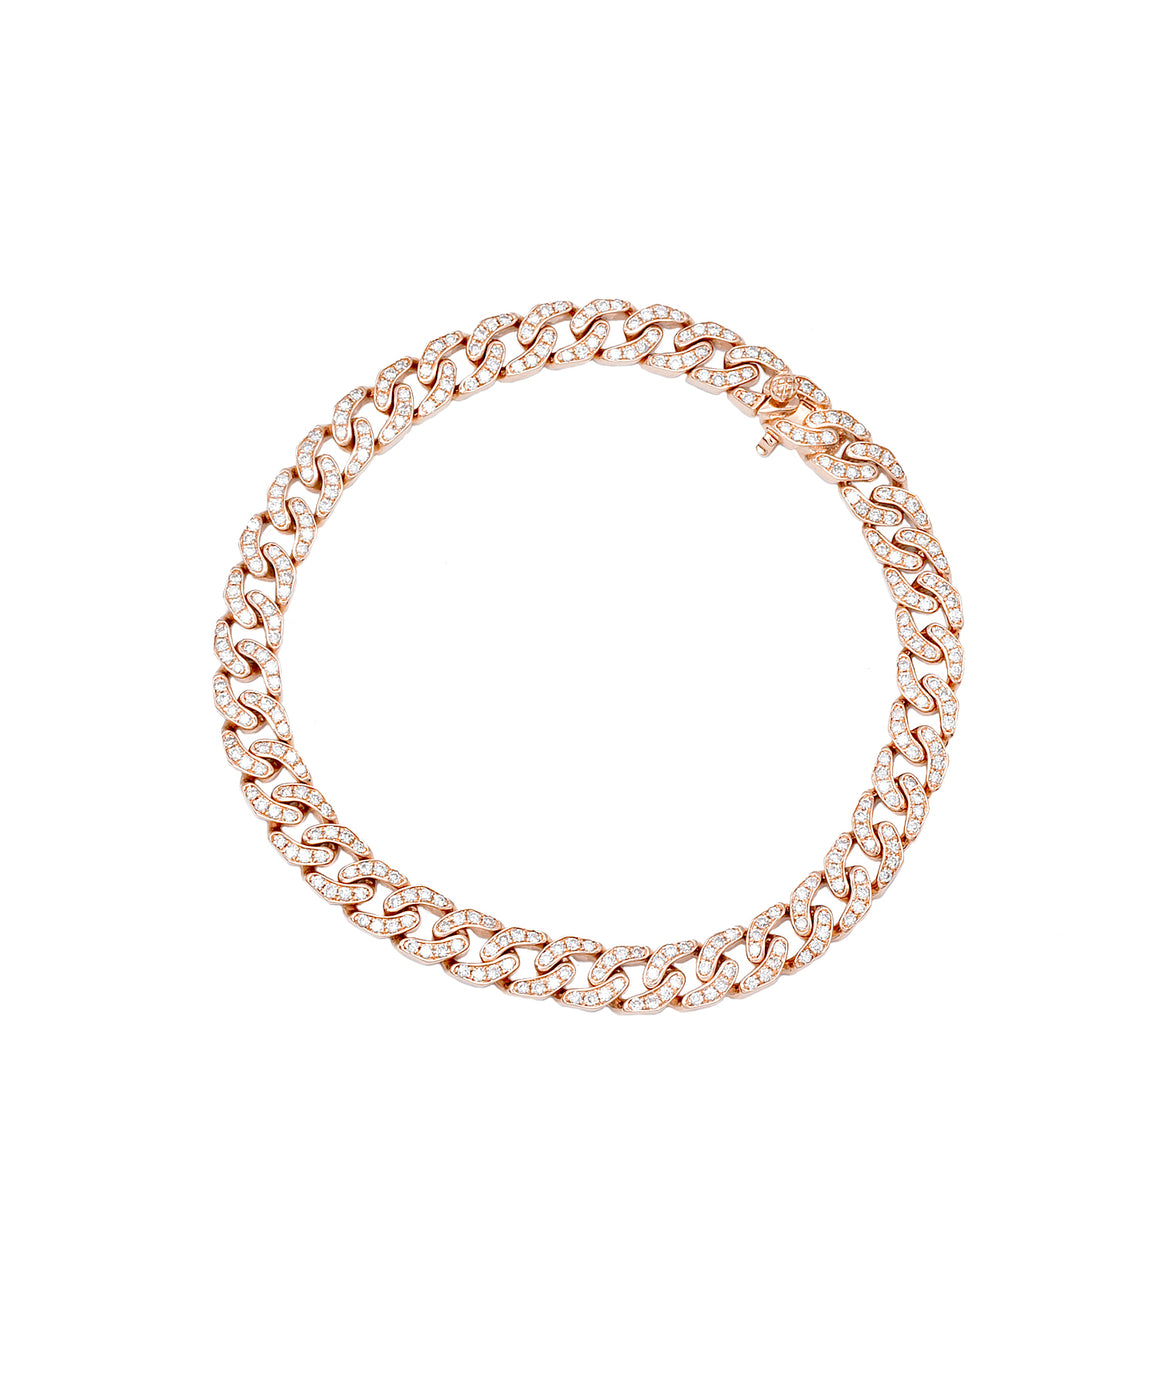 Curb Link Diamond Bracelet in Rose Gold - Lesley Ann Jewels